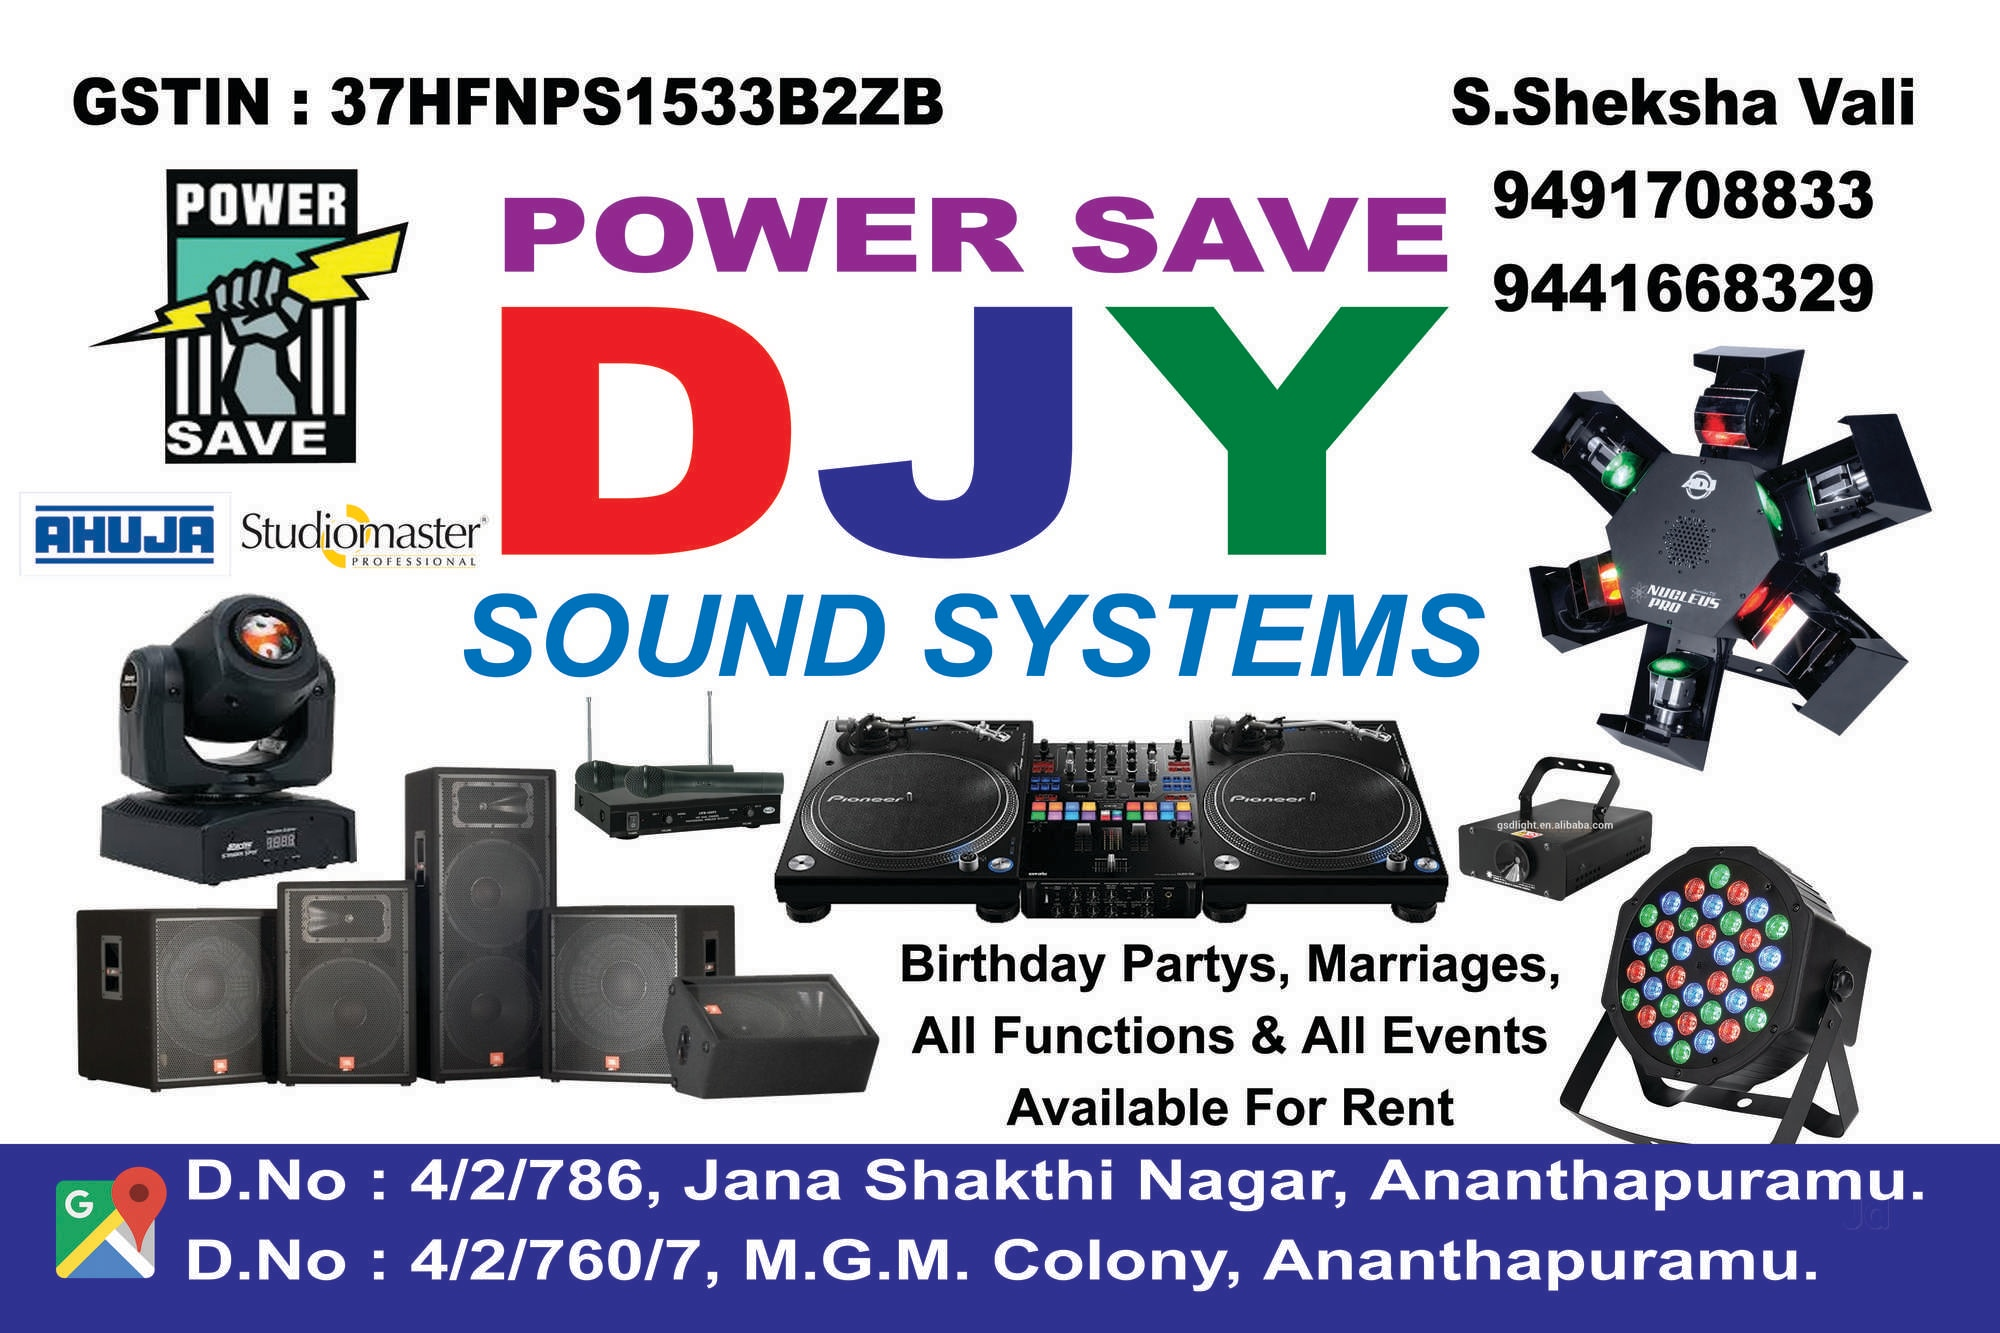 Top 20 Sound Systems On Hire in Anantapur - Best Sound